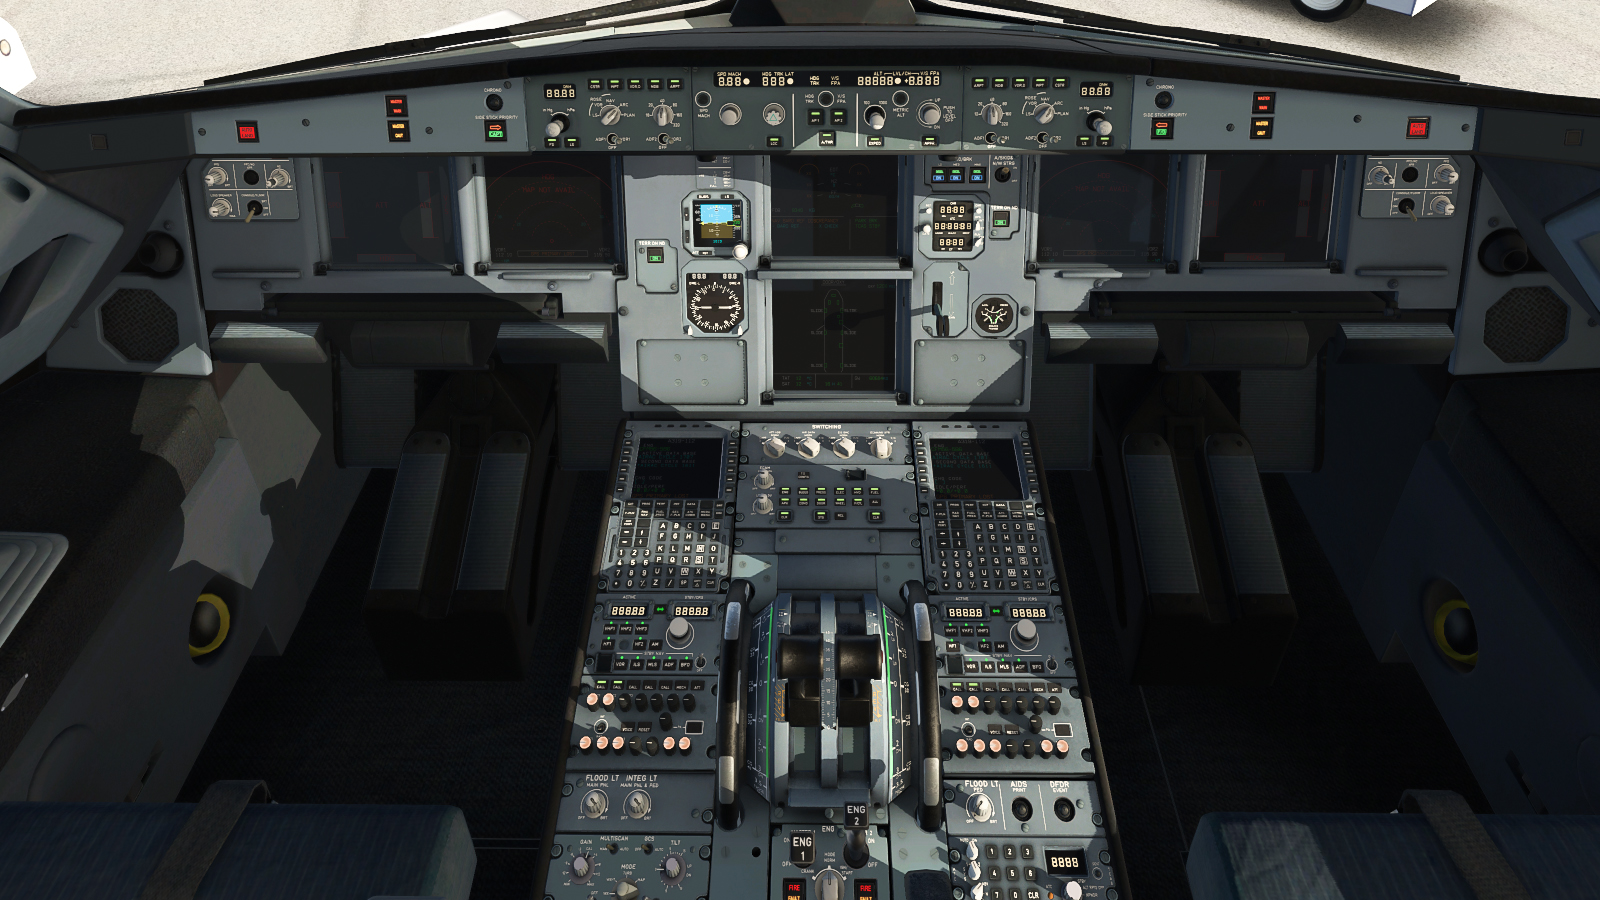 https://forums.x-plane.org/screenshots/monthly_2019_02/51601361_X-Plane2019-02-1121-30-3636.png.fa502e4fa2e81e05bb0f5fdc4545f721.png